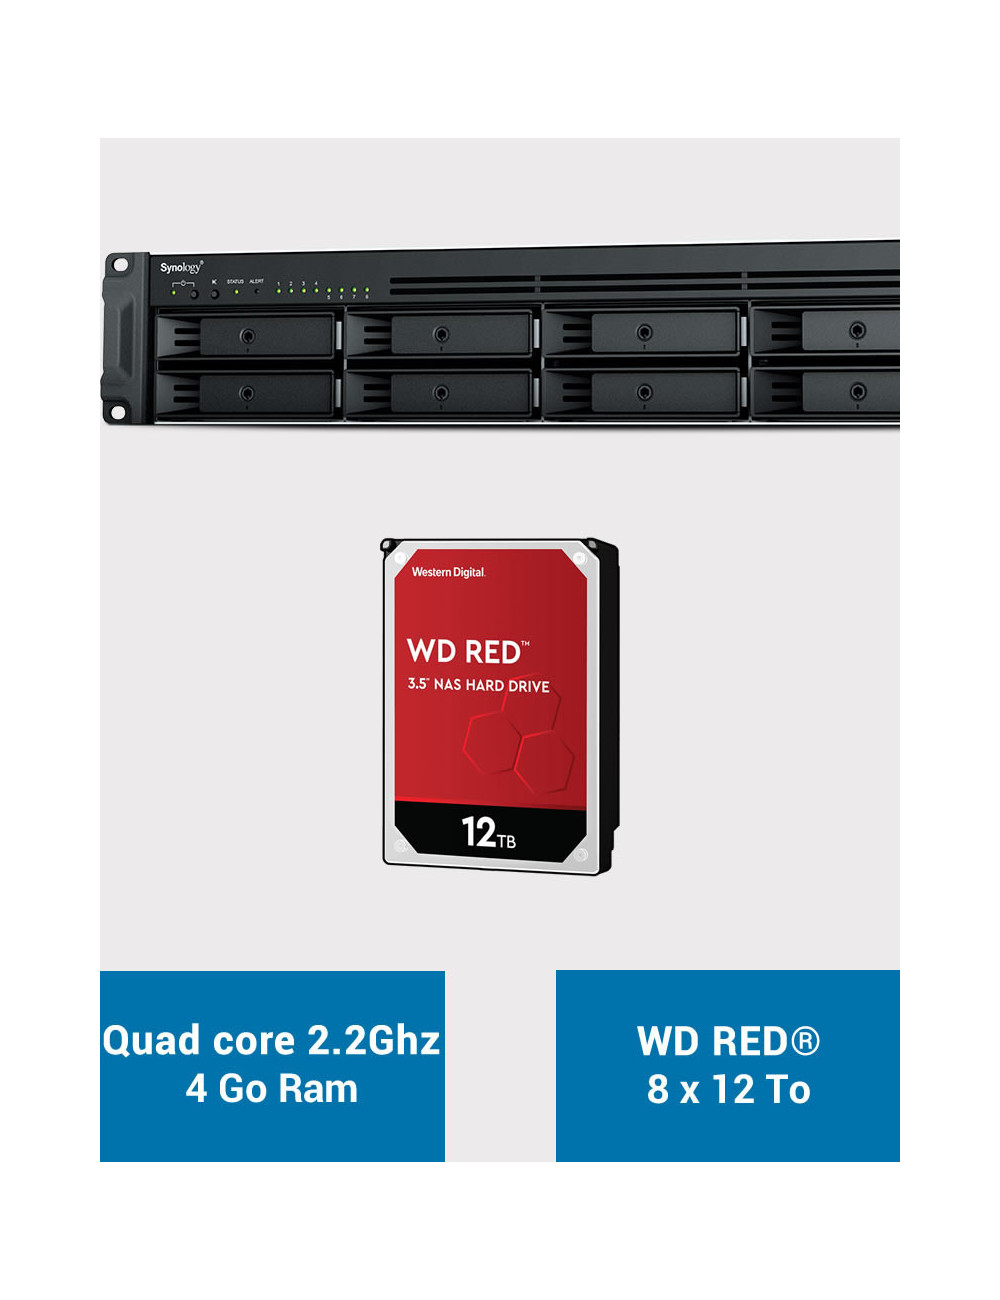 Synology RS1221+ Serveur NAS Rack WD RED 96To (8x12To)